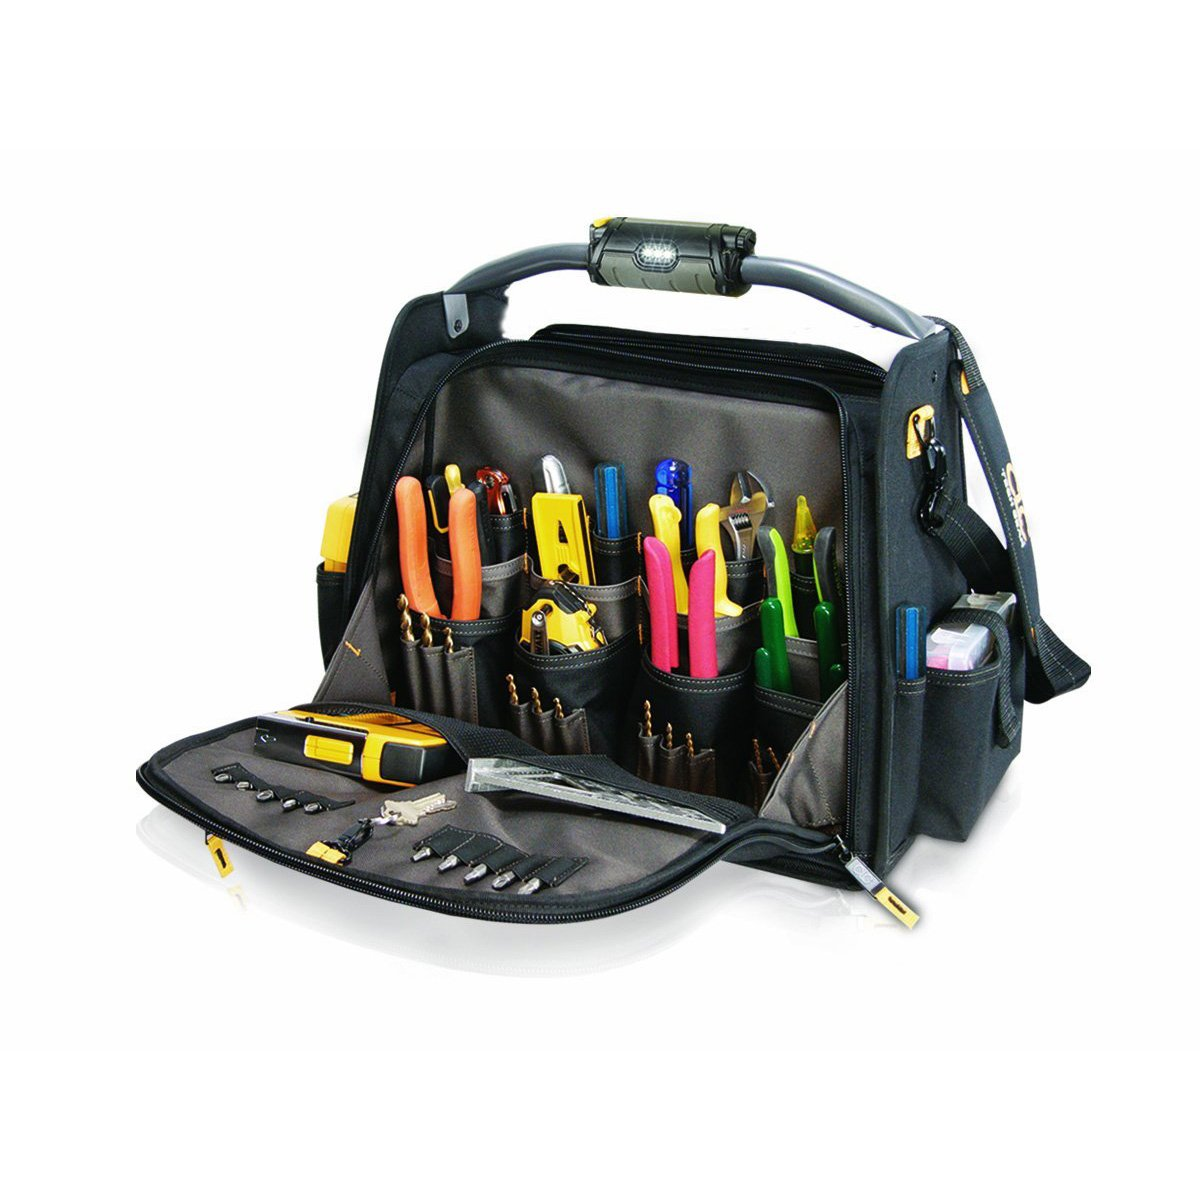 CLC Custom Leathercraft L245 18-Inch CLC Custom Leathercraft Tech Gear Dual Compartment Tool Carrier with LED Lighted Handle, 1-Pack  (Only bag)